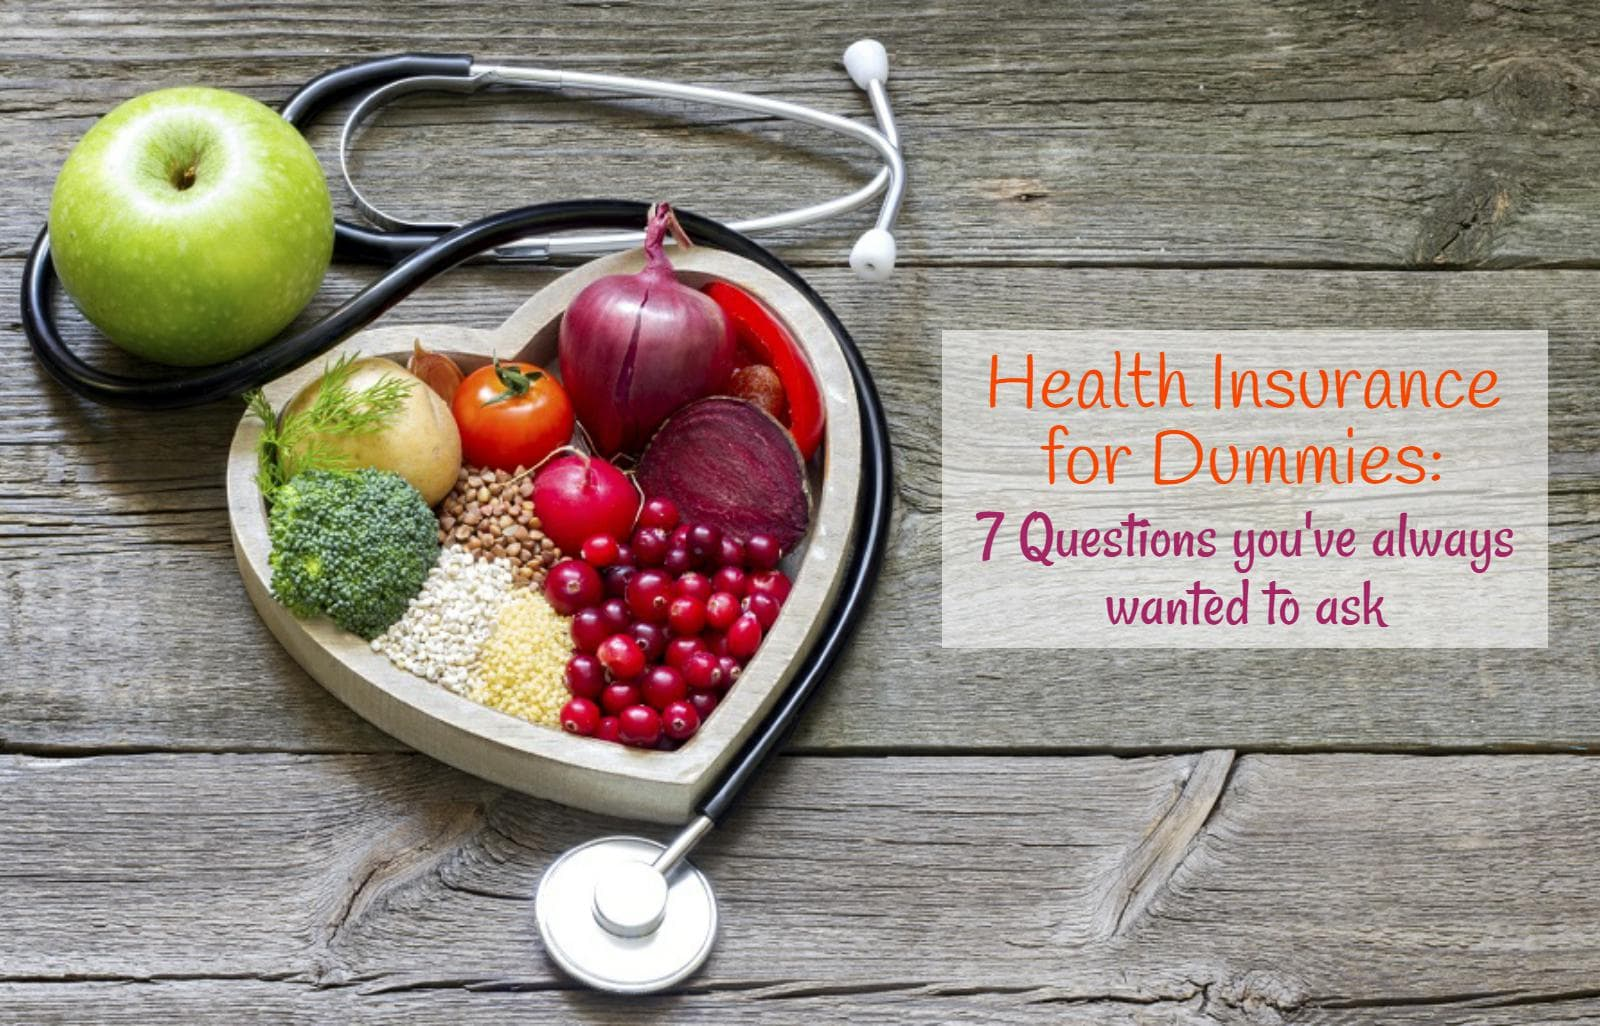 Health insurance for dummies: 6 essential questions and answers